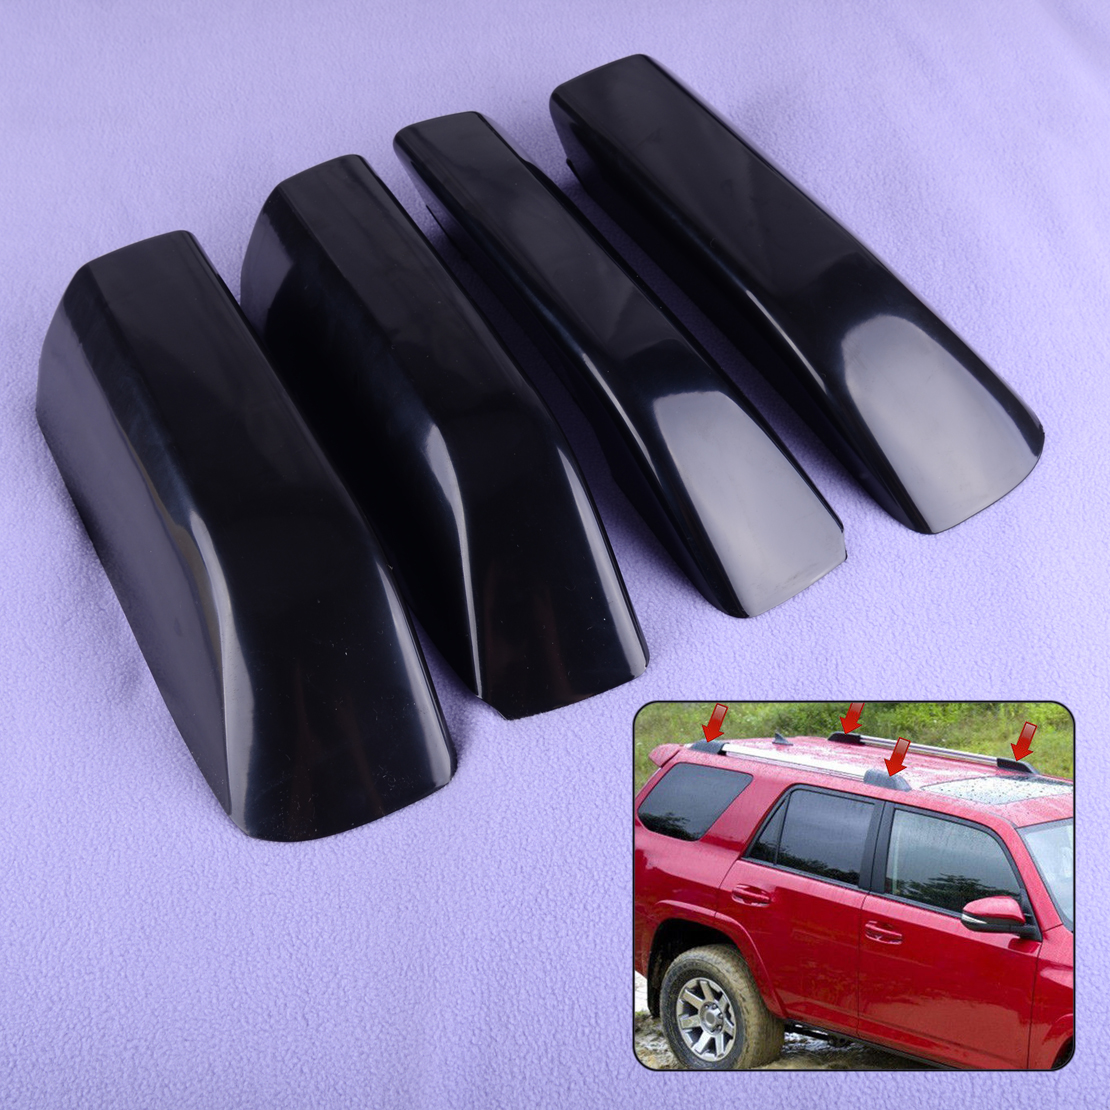 DWCX 4PCS Car Roof Luggage Rack Rail End Cover Shell fit for Toyota 4Runner N280 2010 2011 2012 2013 2014 2015 2016 2017 2018